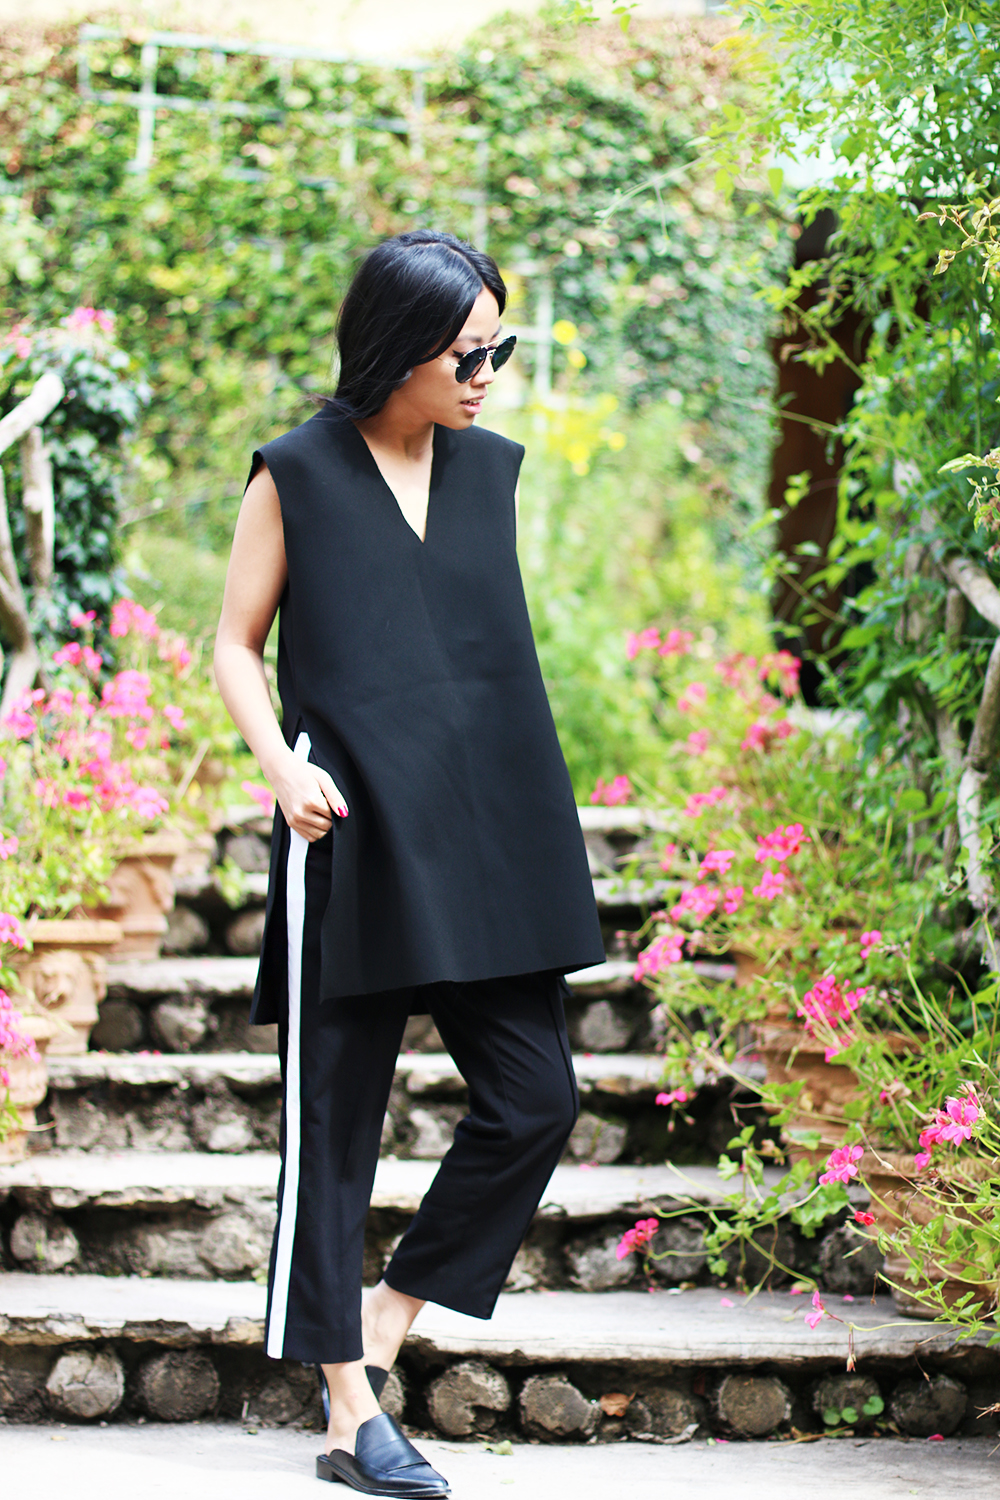 IHEARTALICE.DE – Fashion & Travel Blog: All Black Everything Look wearing V-Neck Shirt & Tibi NY Leather Loafers